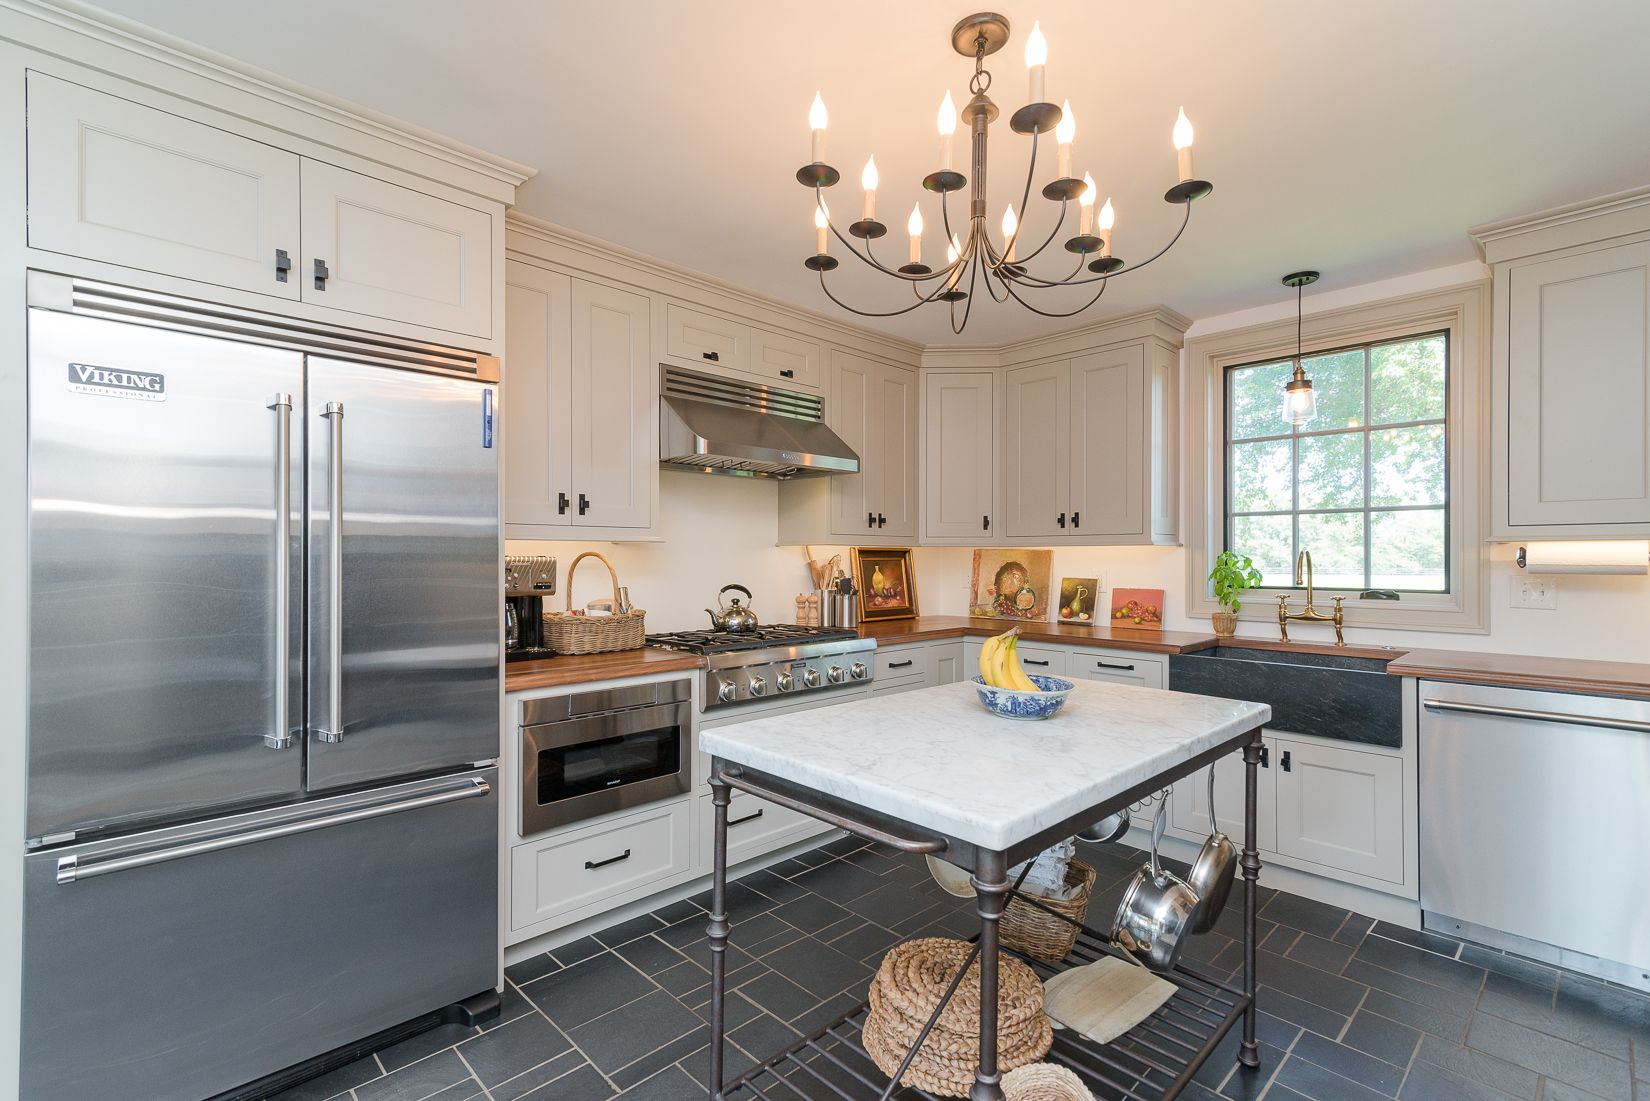 Follow the link to see more of this kitchen on